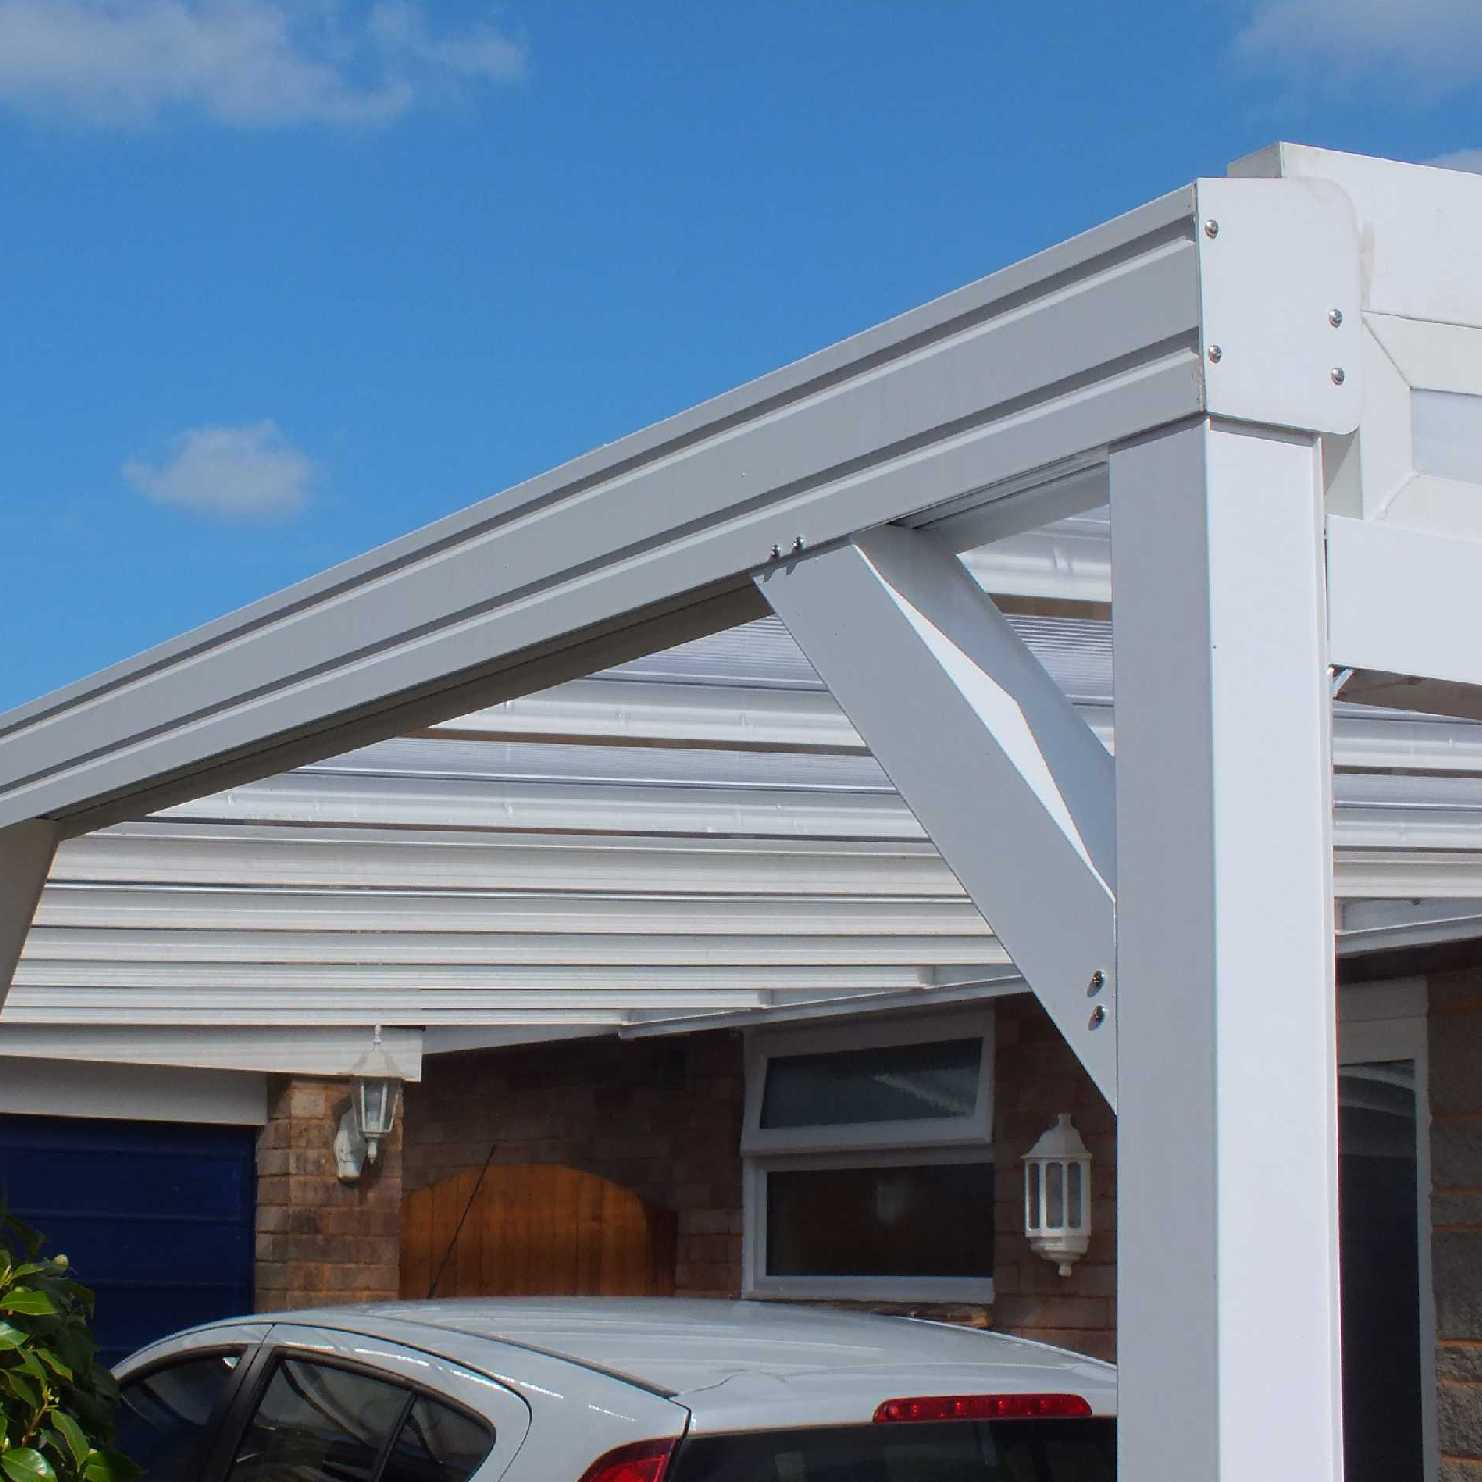 Buy Omega Smart White Lean-To Canopy with 16mm Polycarbonate Glazing - 10.6m (W) x 2.5m (P), (5) Supporting Posts online today